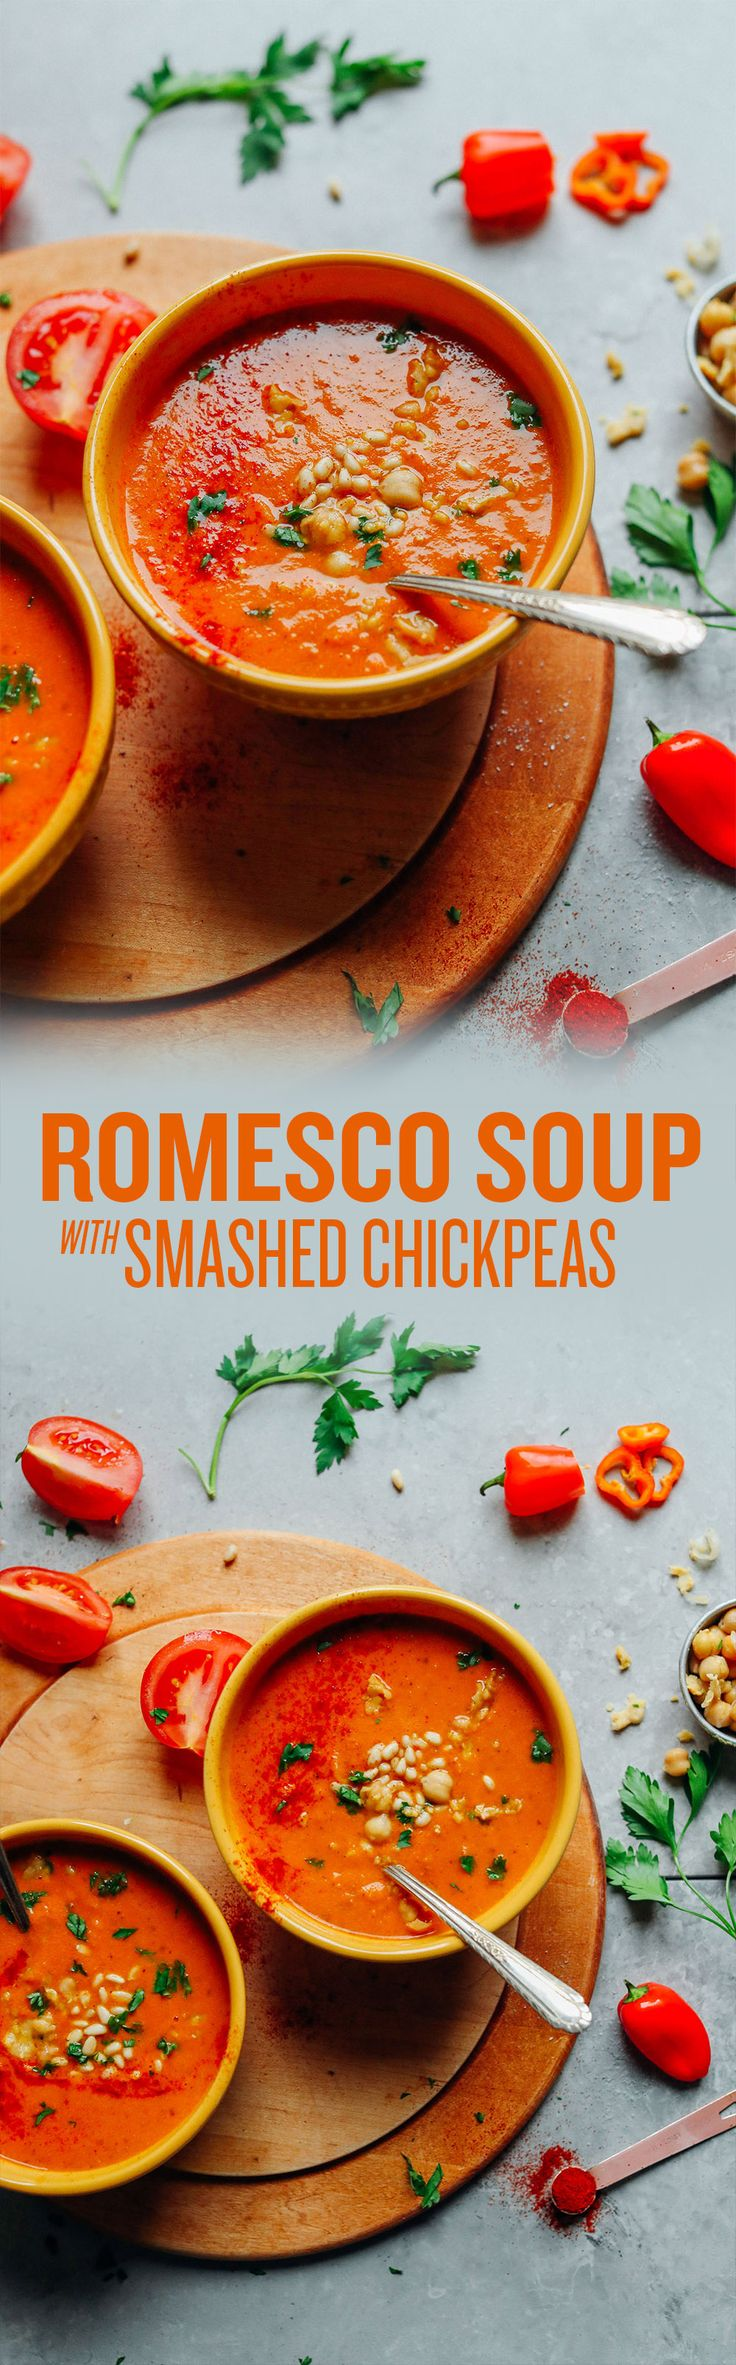 AMAZING Romesco Soup with Smashed Chickpeas! 10 ingredients, simple methods, BIG flavor!